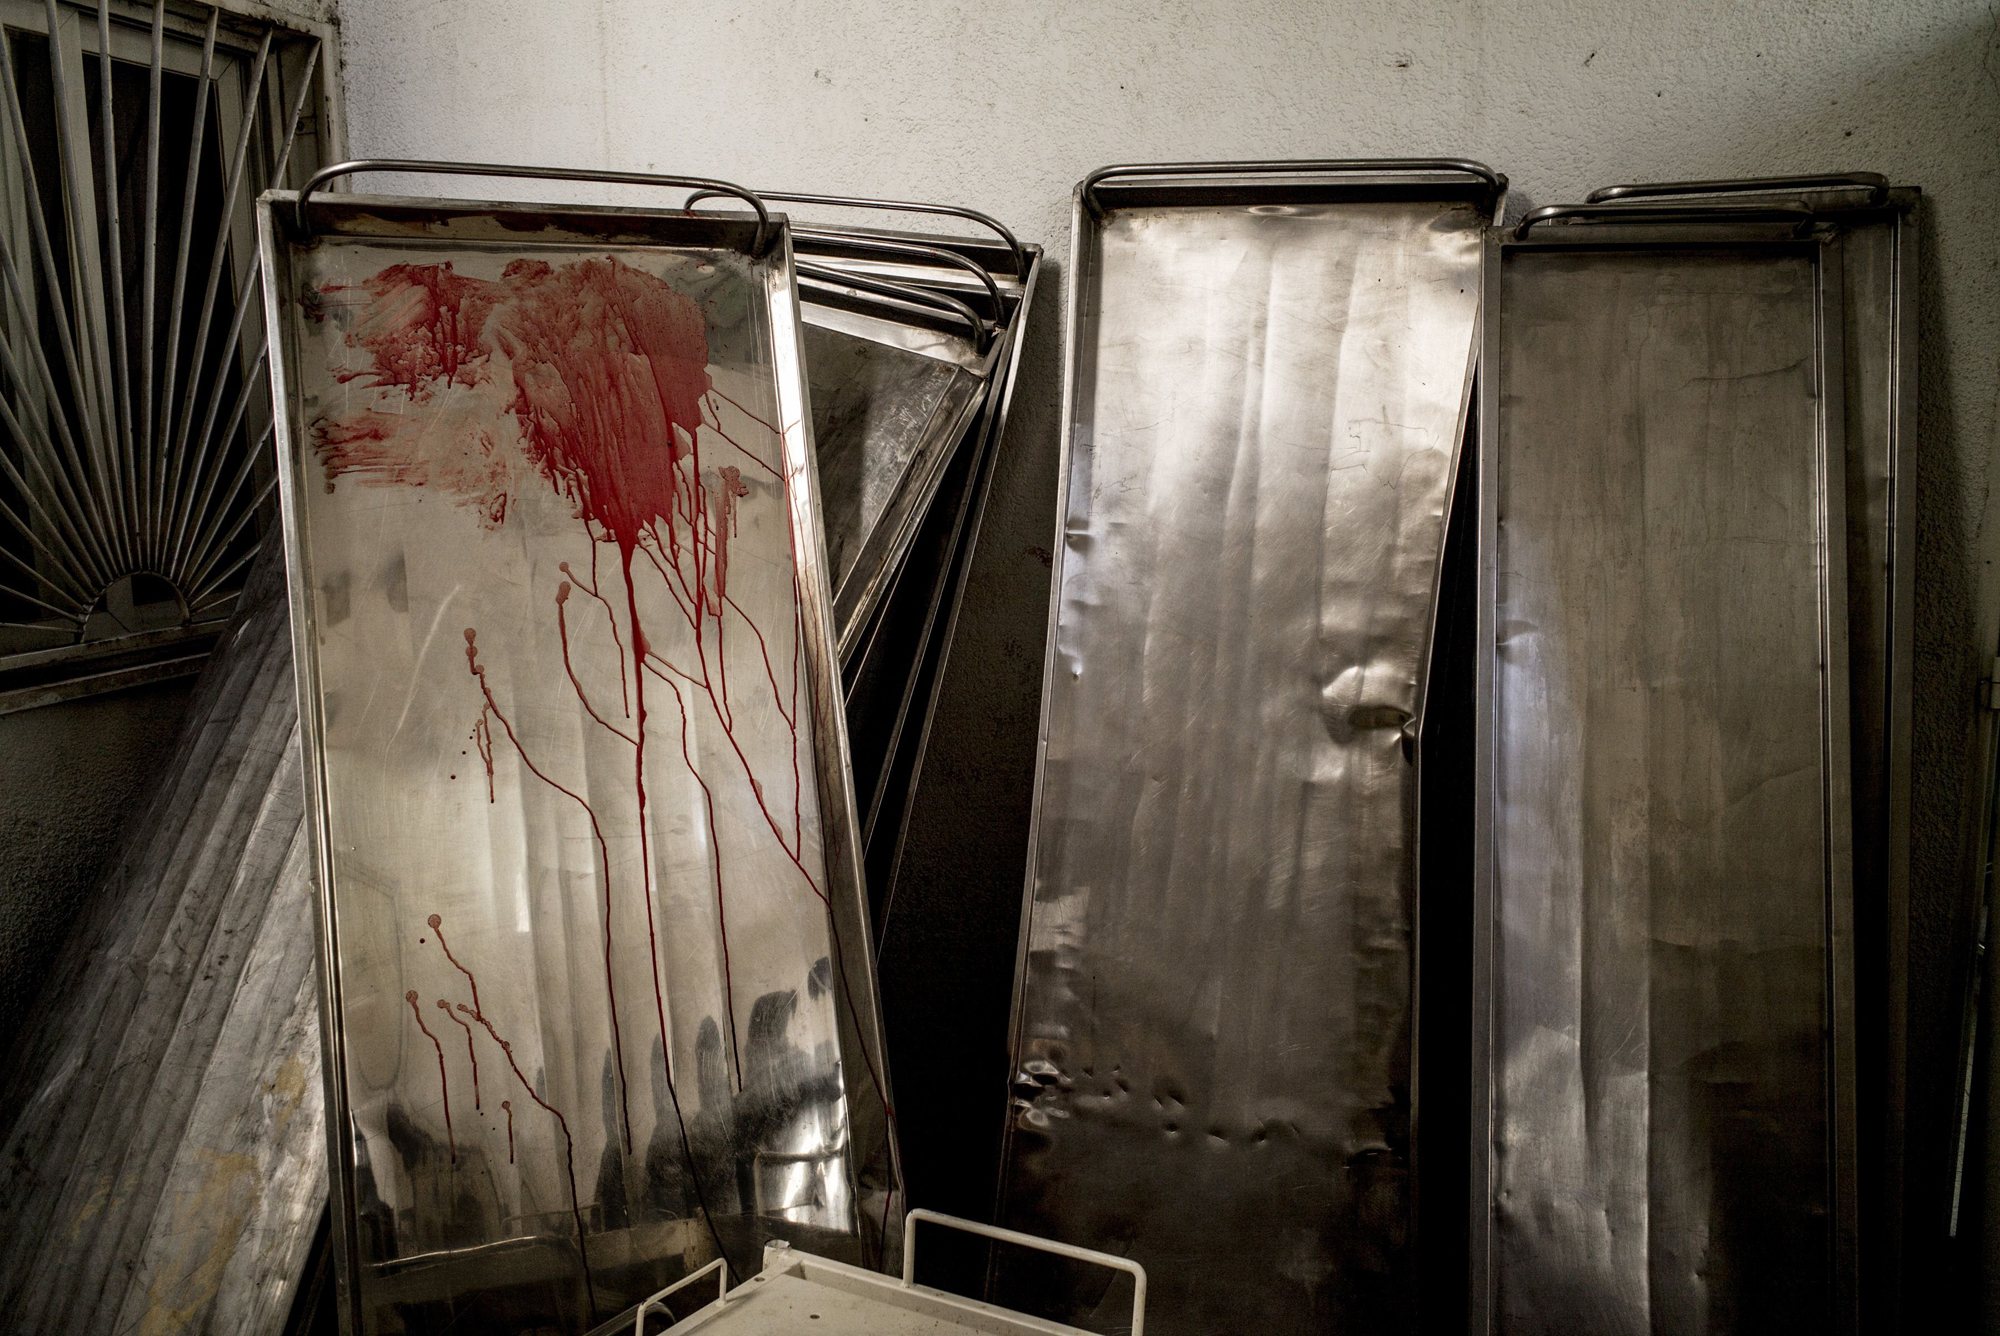 Gurneys are seen piled up outside the morgue at the Kamal Adwan hospital in Beit Lahia in the northern Gaza Strip on July 30, 2014.